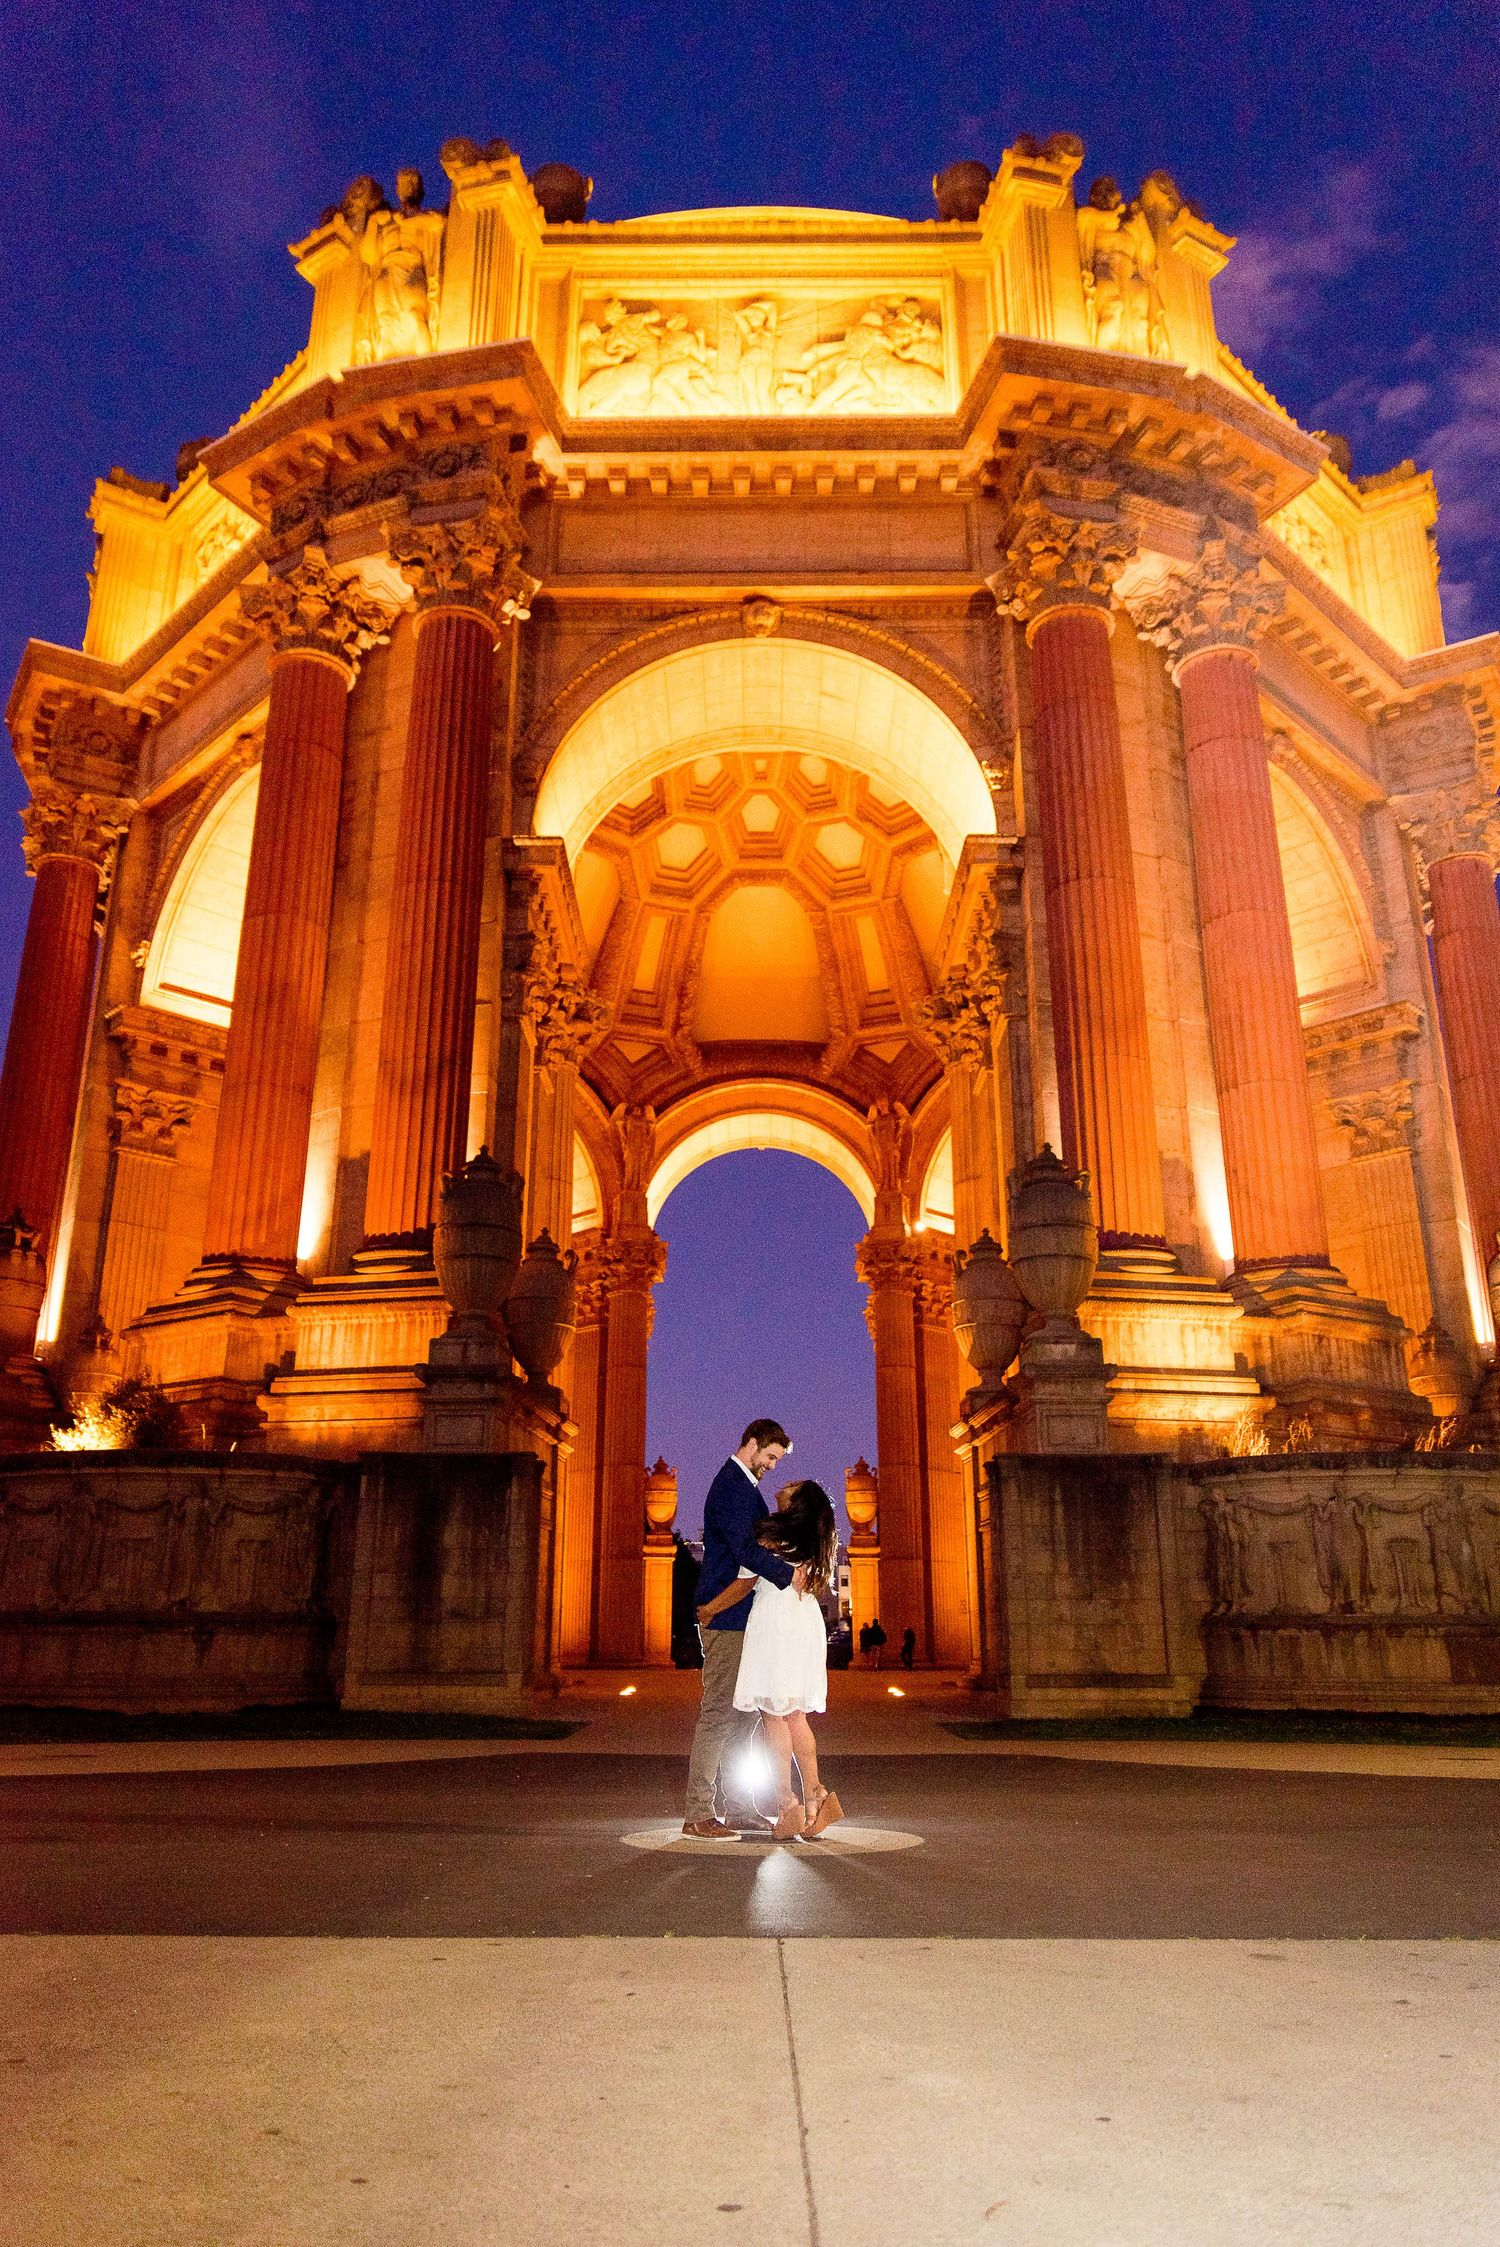 couples holding hands facing each other in front of the Palace of Fine Arts San Francisco at night